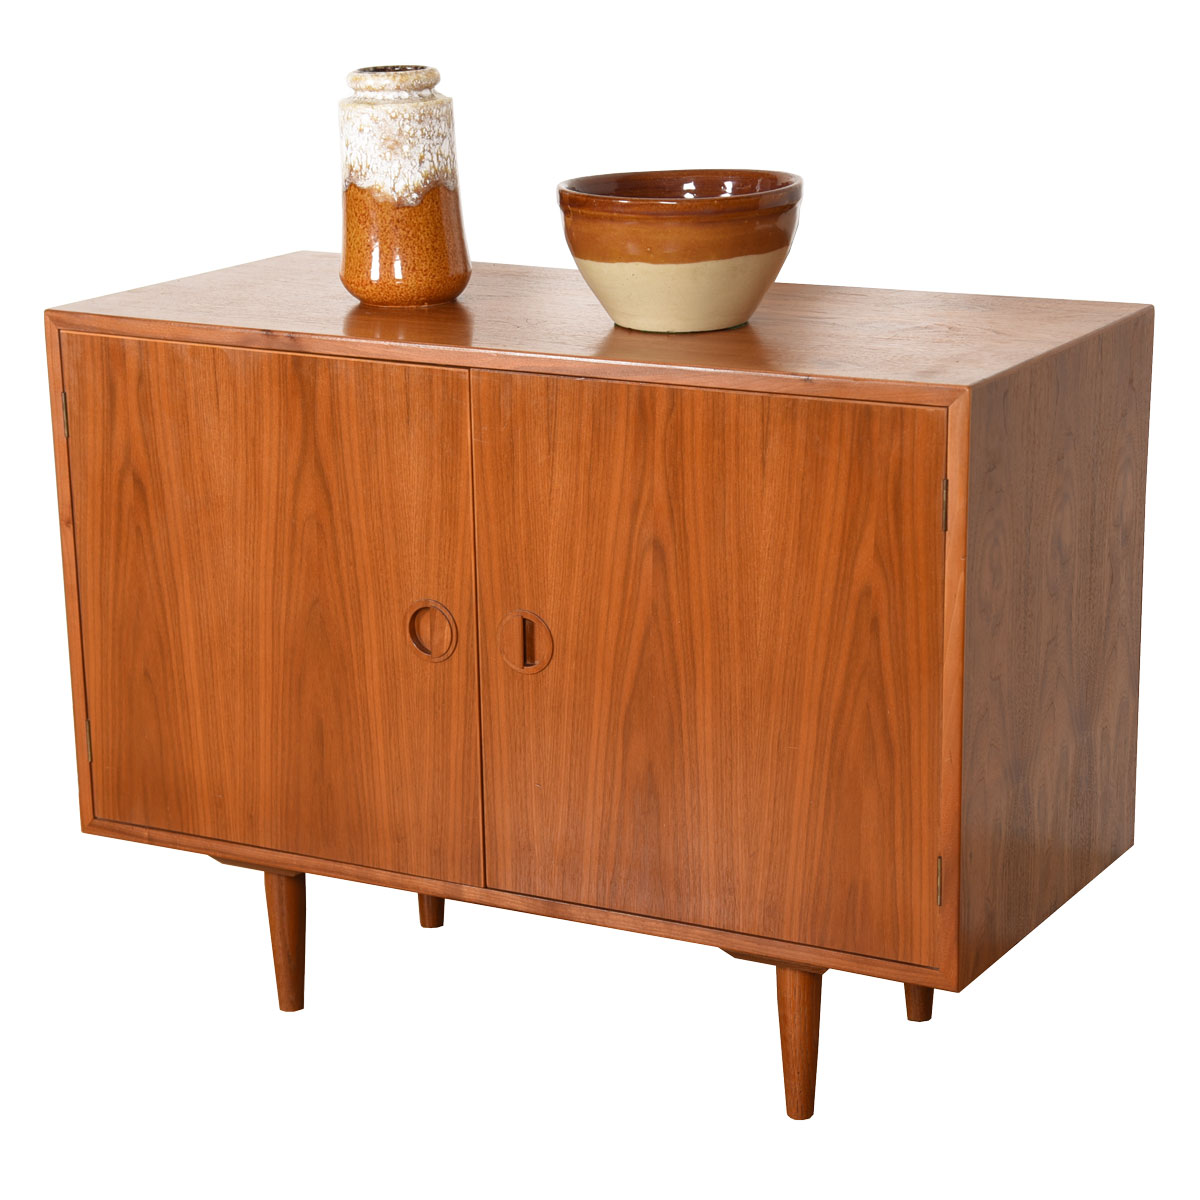 Danish Modern Walnut Little-Low Cabinet